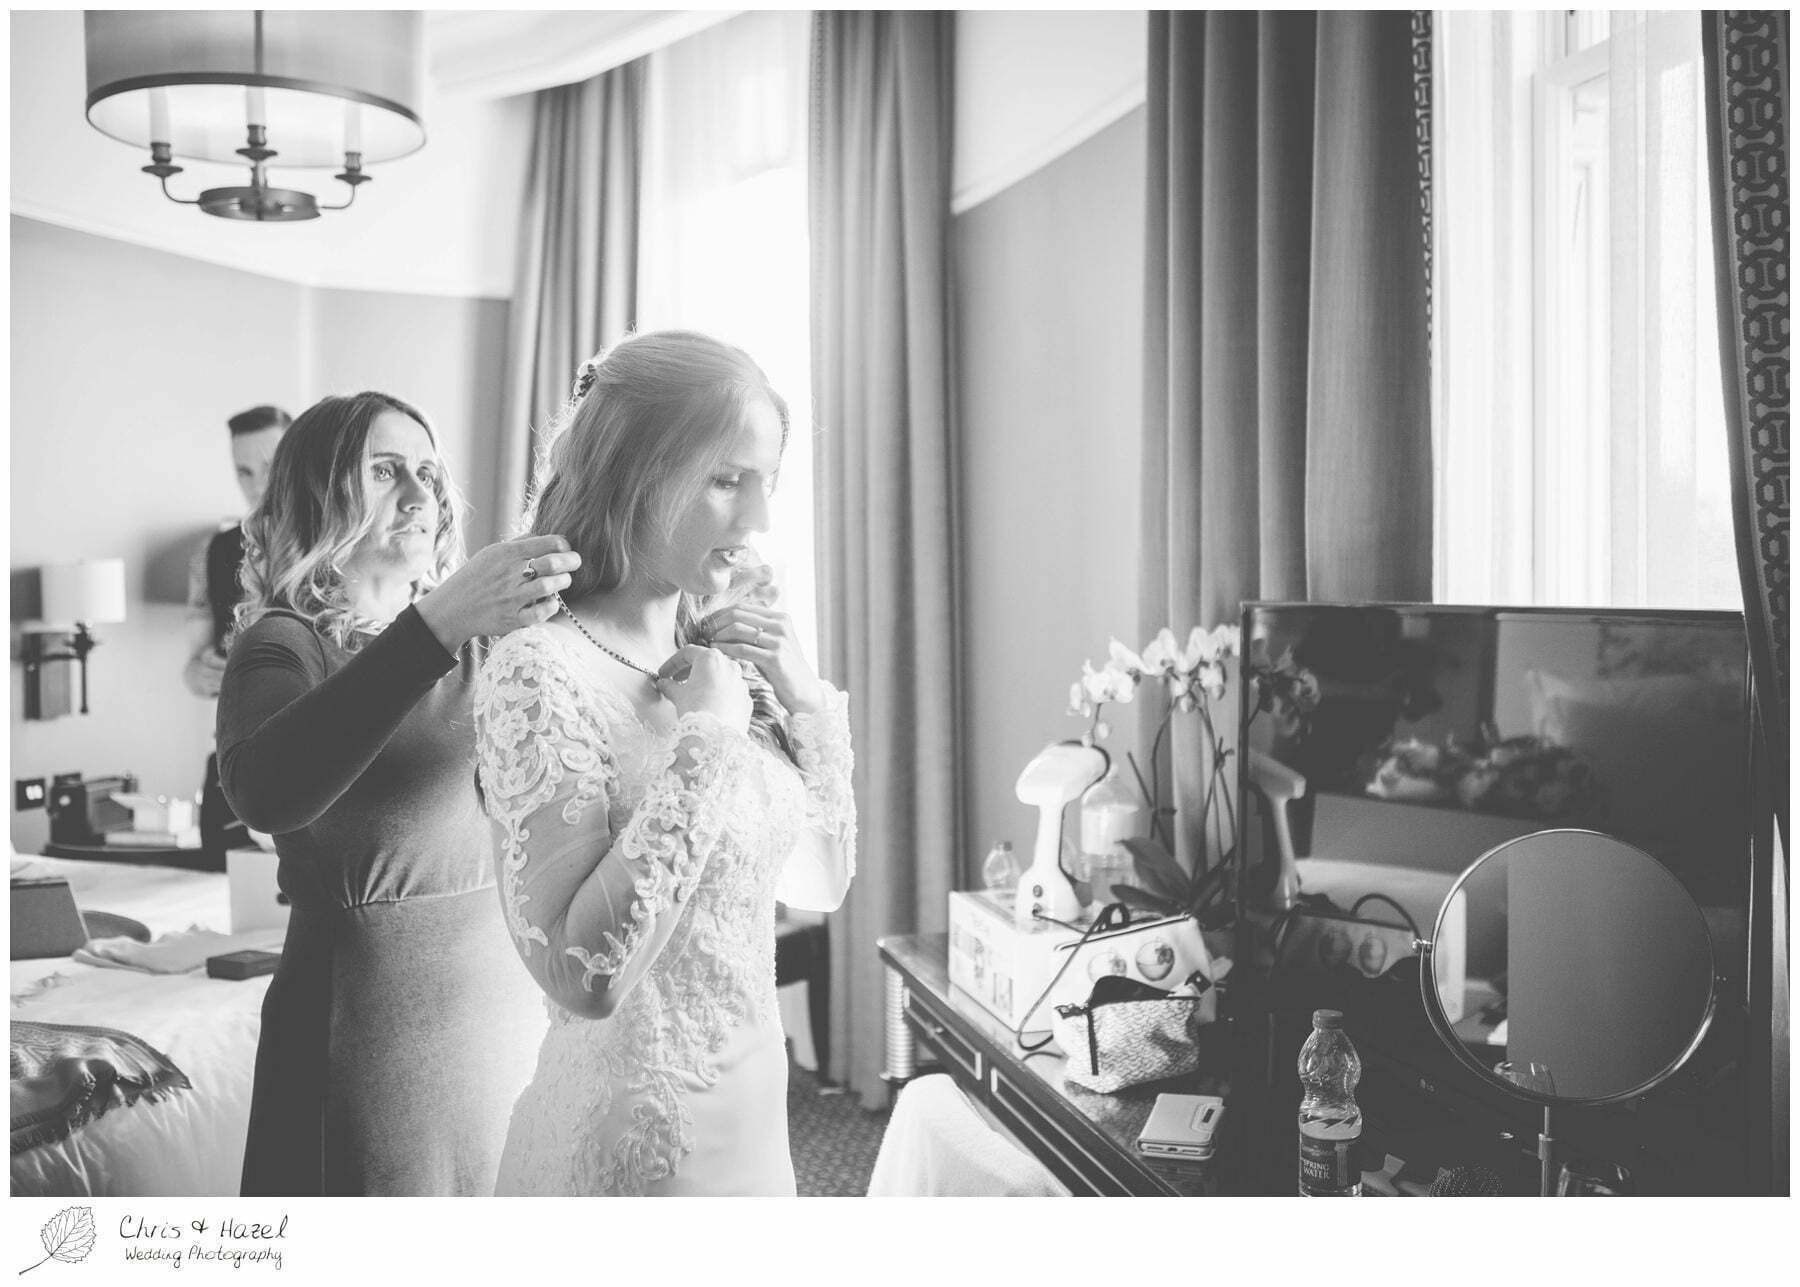 Bride in wedding dress, Wedding preparations, The Gainsborough Bath Spa hotel, Gainsborough Hotel Bath, documentary wedding photography, Chris and Hazel Wedding Photography Bath, Andy Frost Sian Upson